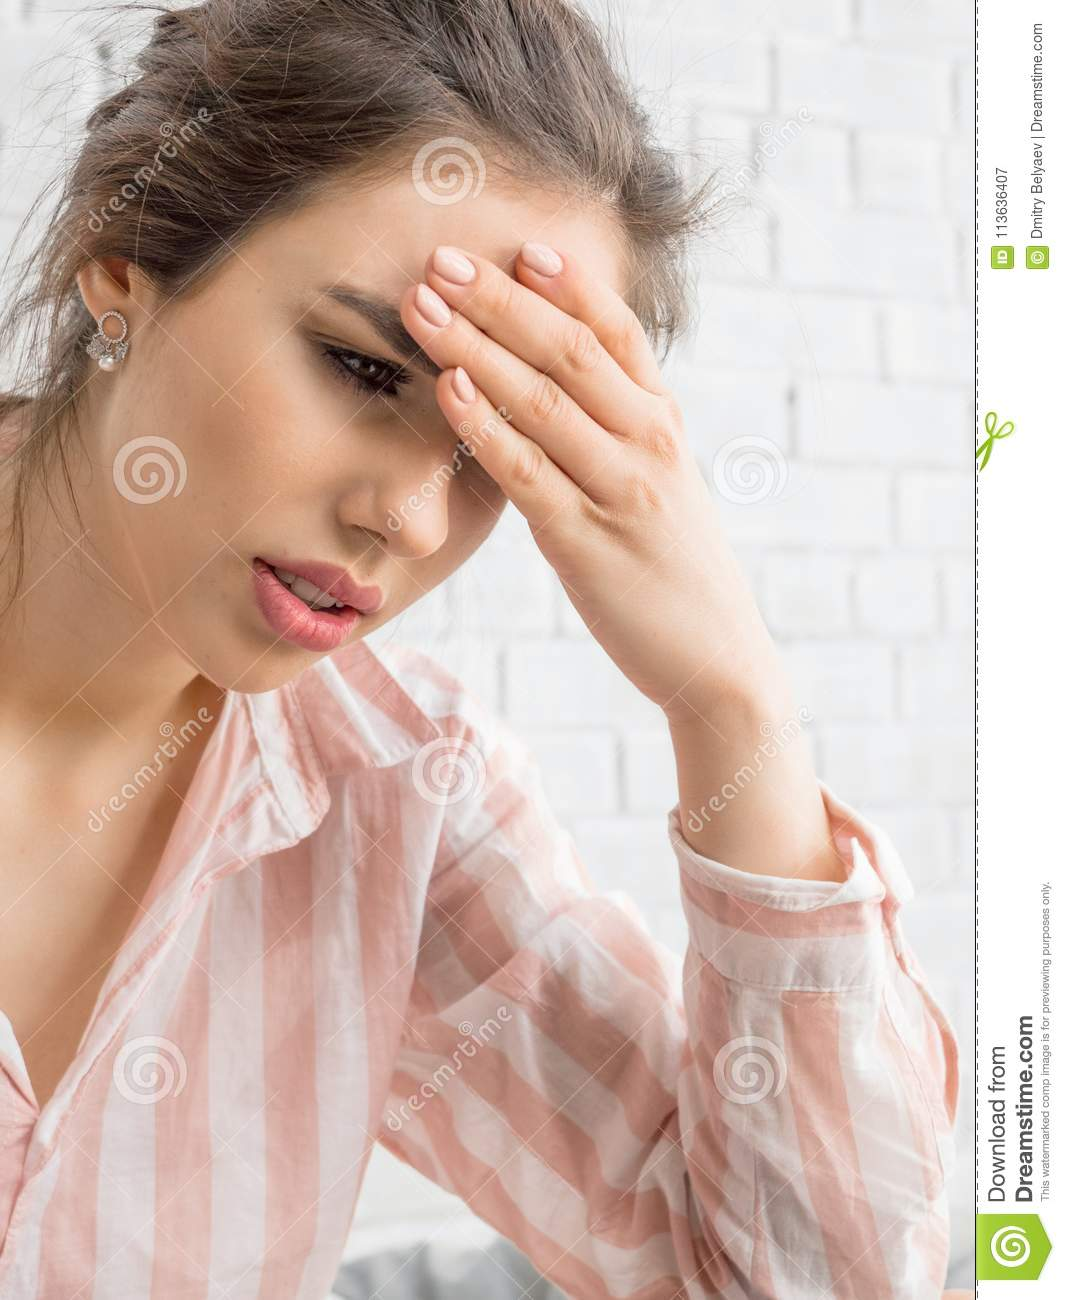 Strong Headache Concept, Young Woman Massaging Temples With Eyes Closed,  Suffering From Chronic Migraine, Stressed Stock Image - Image of  frustratedgirl, fatiguefemale: 113636407